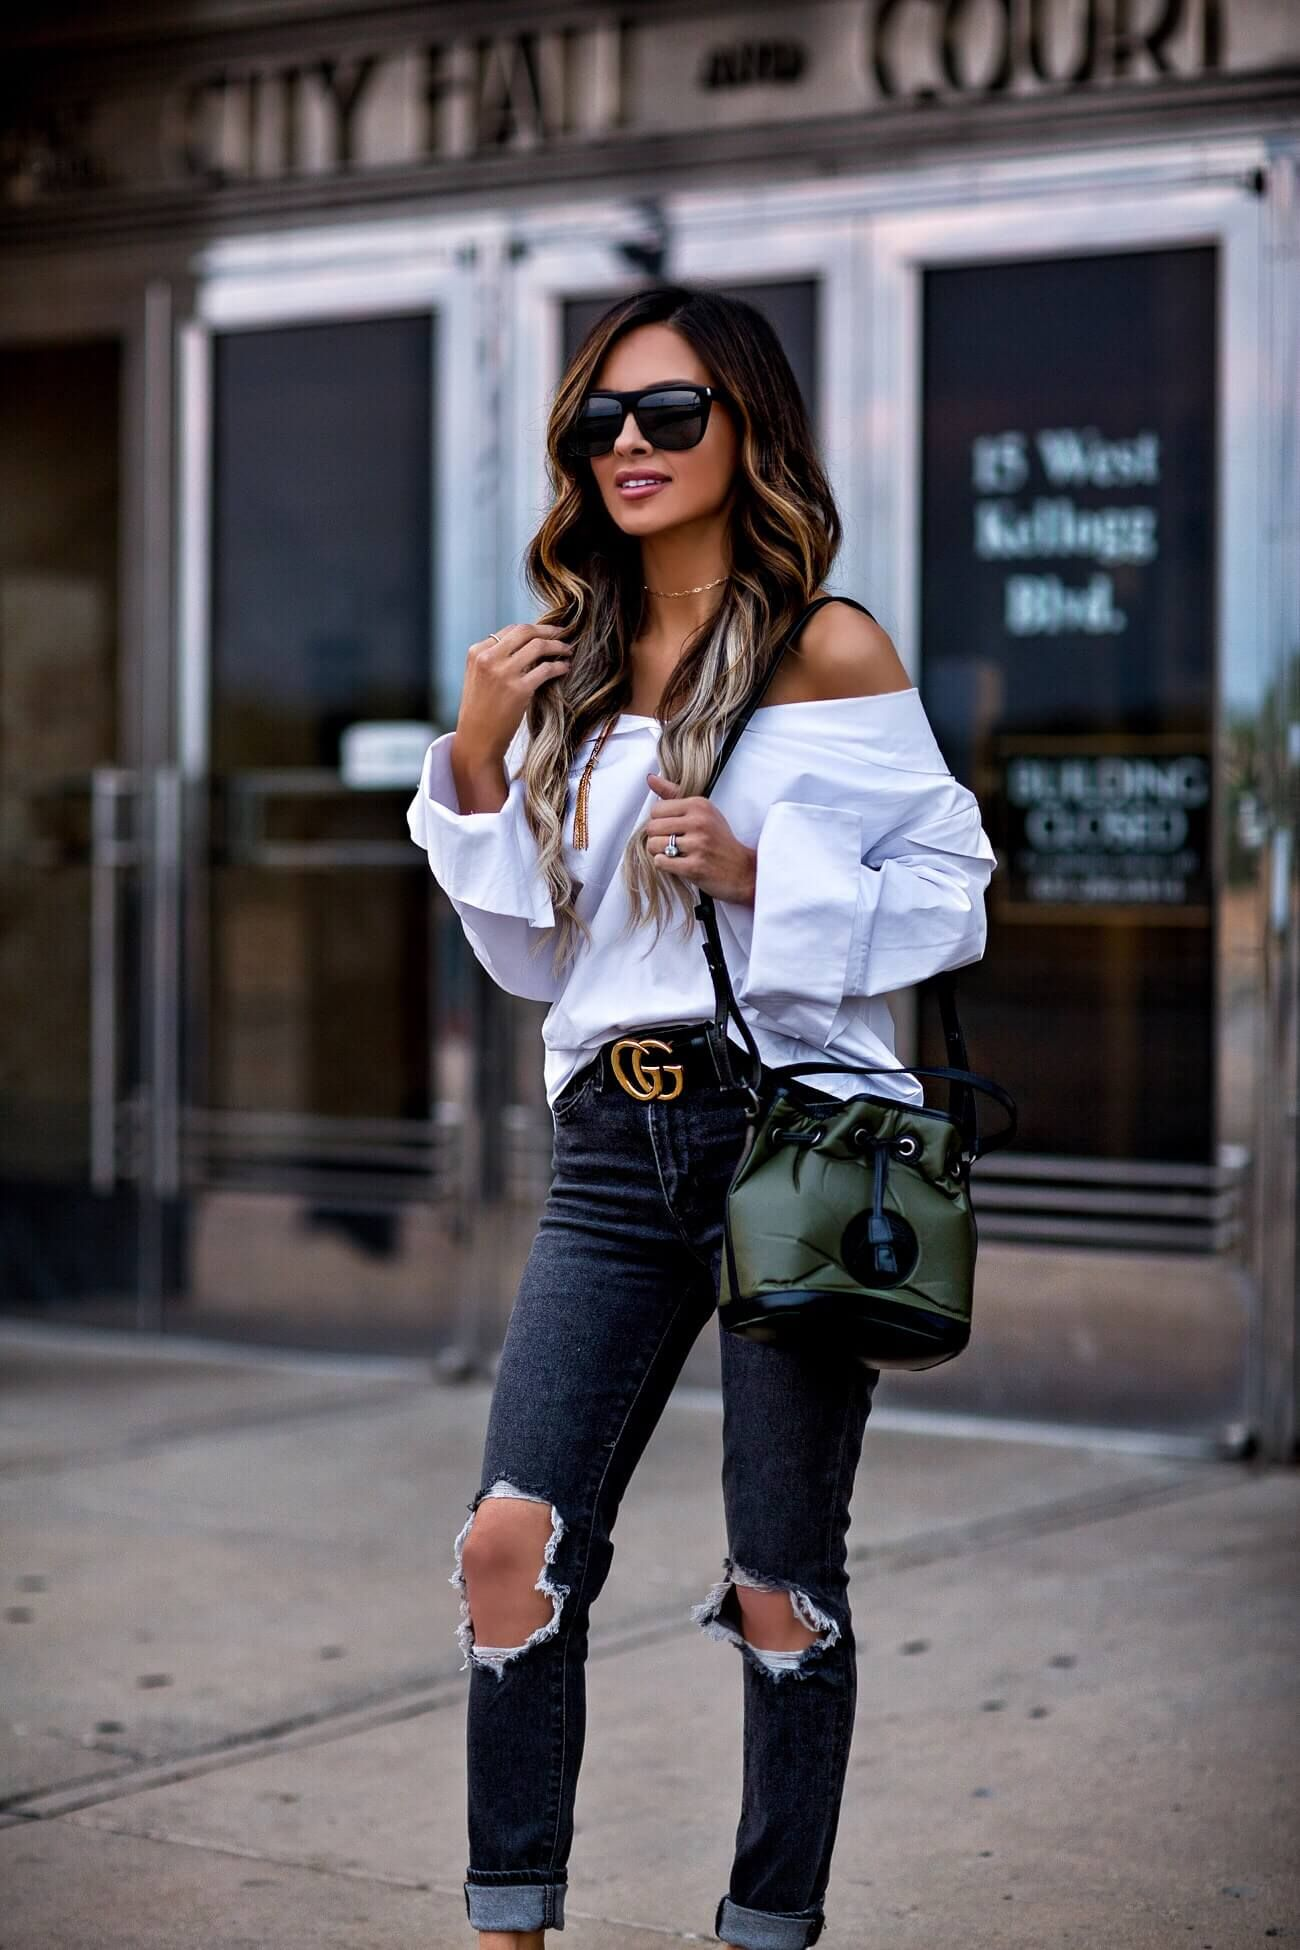 b96ffefc0b8d fashion blogger mia mia mine in a white button down top and a gucci belt